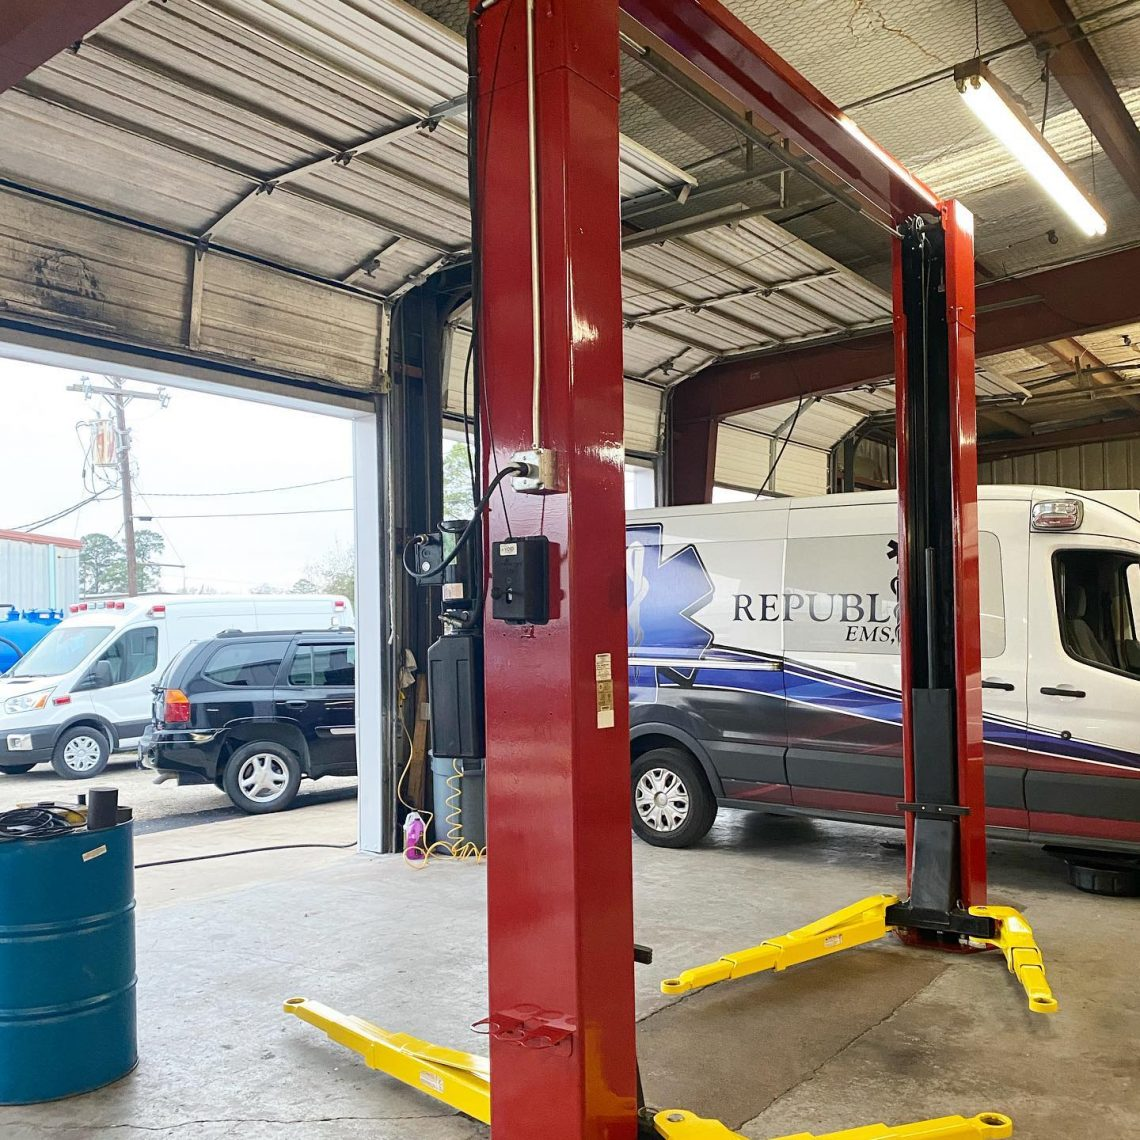 High quality paint adds extra protection to machinery and equipment to expand its lifespan.